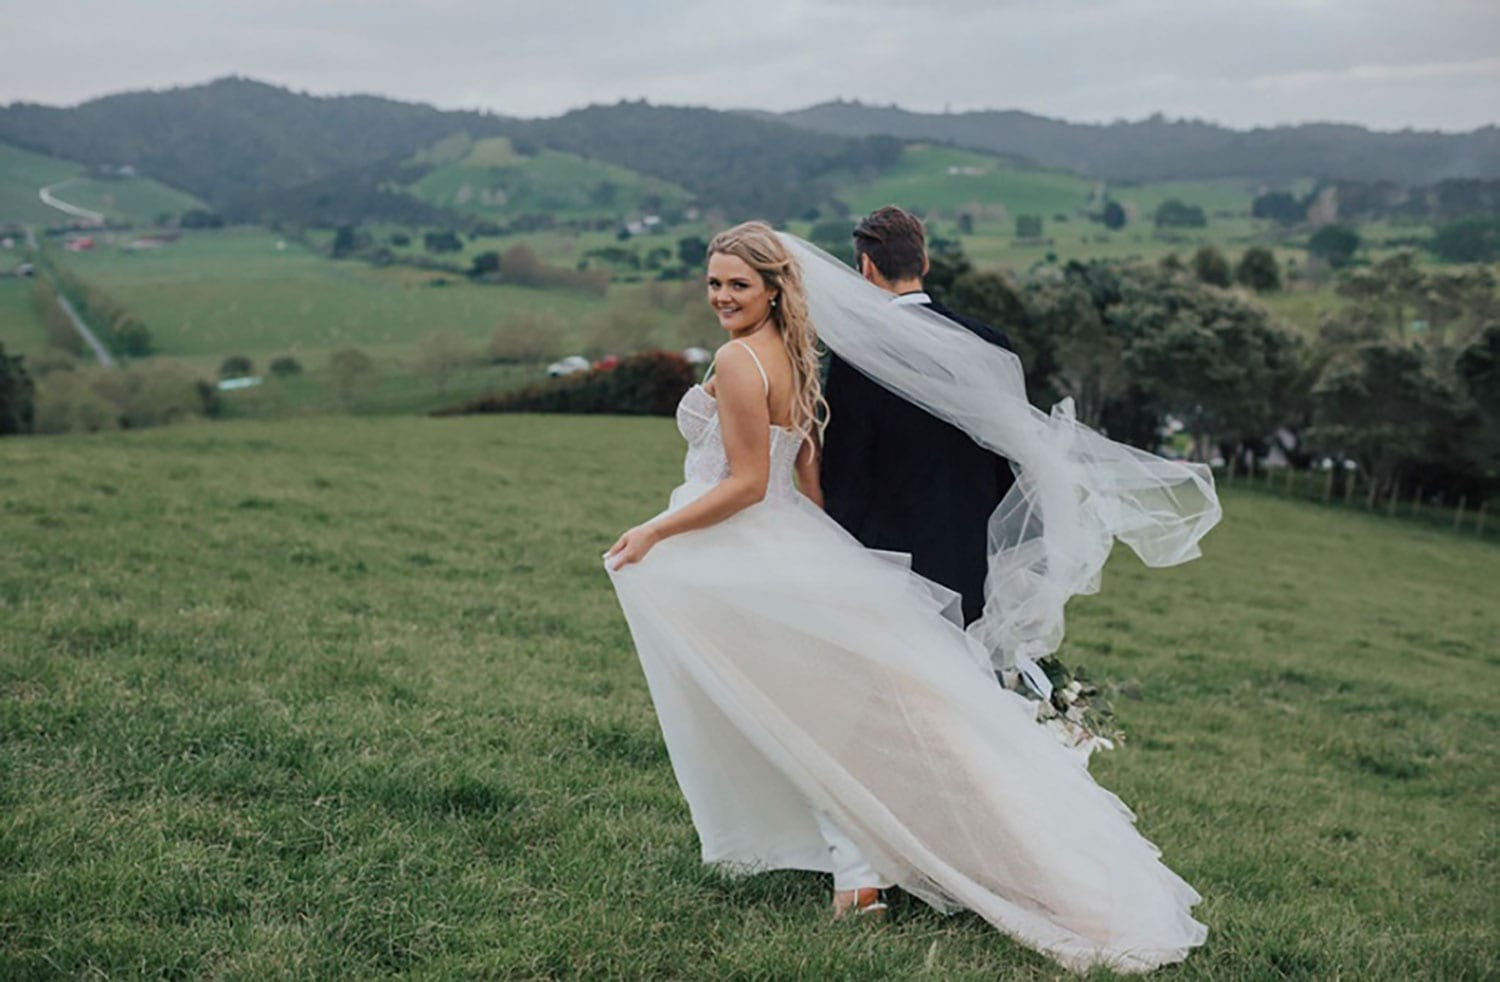 Vinka Design Features Real Weddings - bride wearing custom made gown with two different beadings incorporated into a fitted, structured bodice, and dreamy layered tulle skirt. Bride and groom walk through field with dress and veil blowing in the breeze